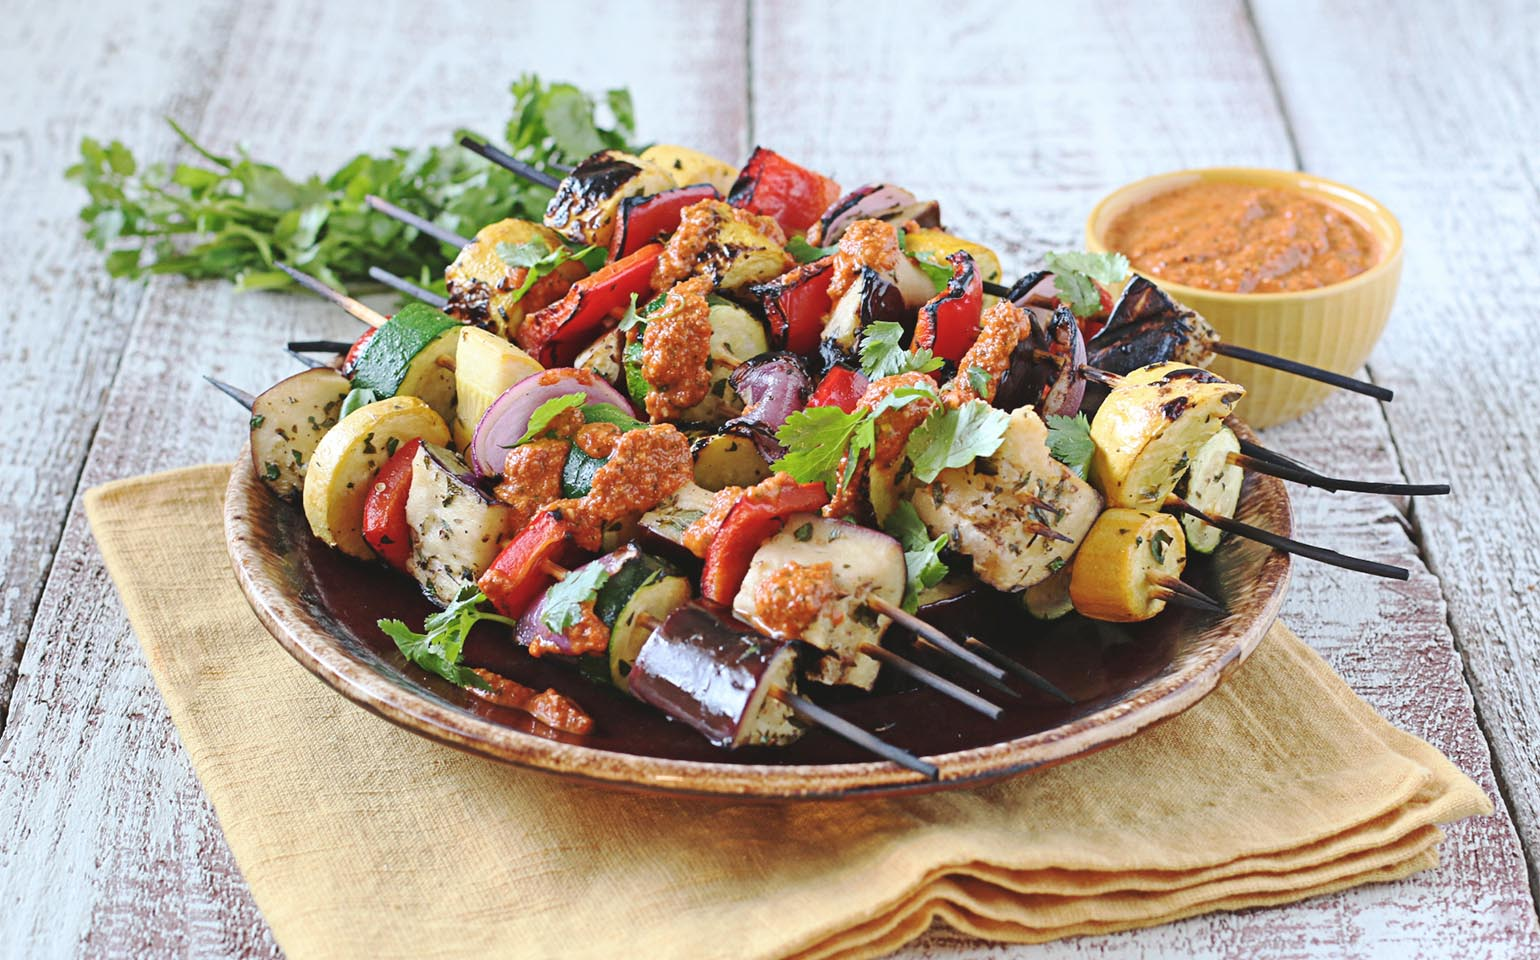 Grilled Lemon Marinated Summer Vegetables with Romesco Sauces